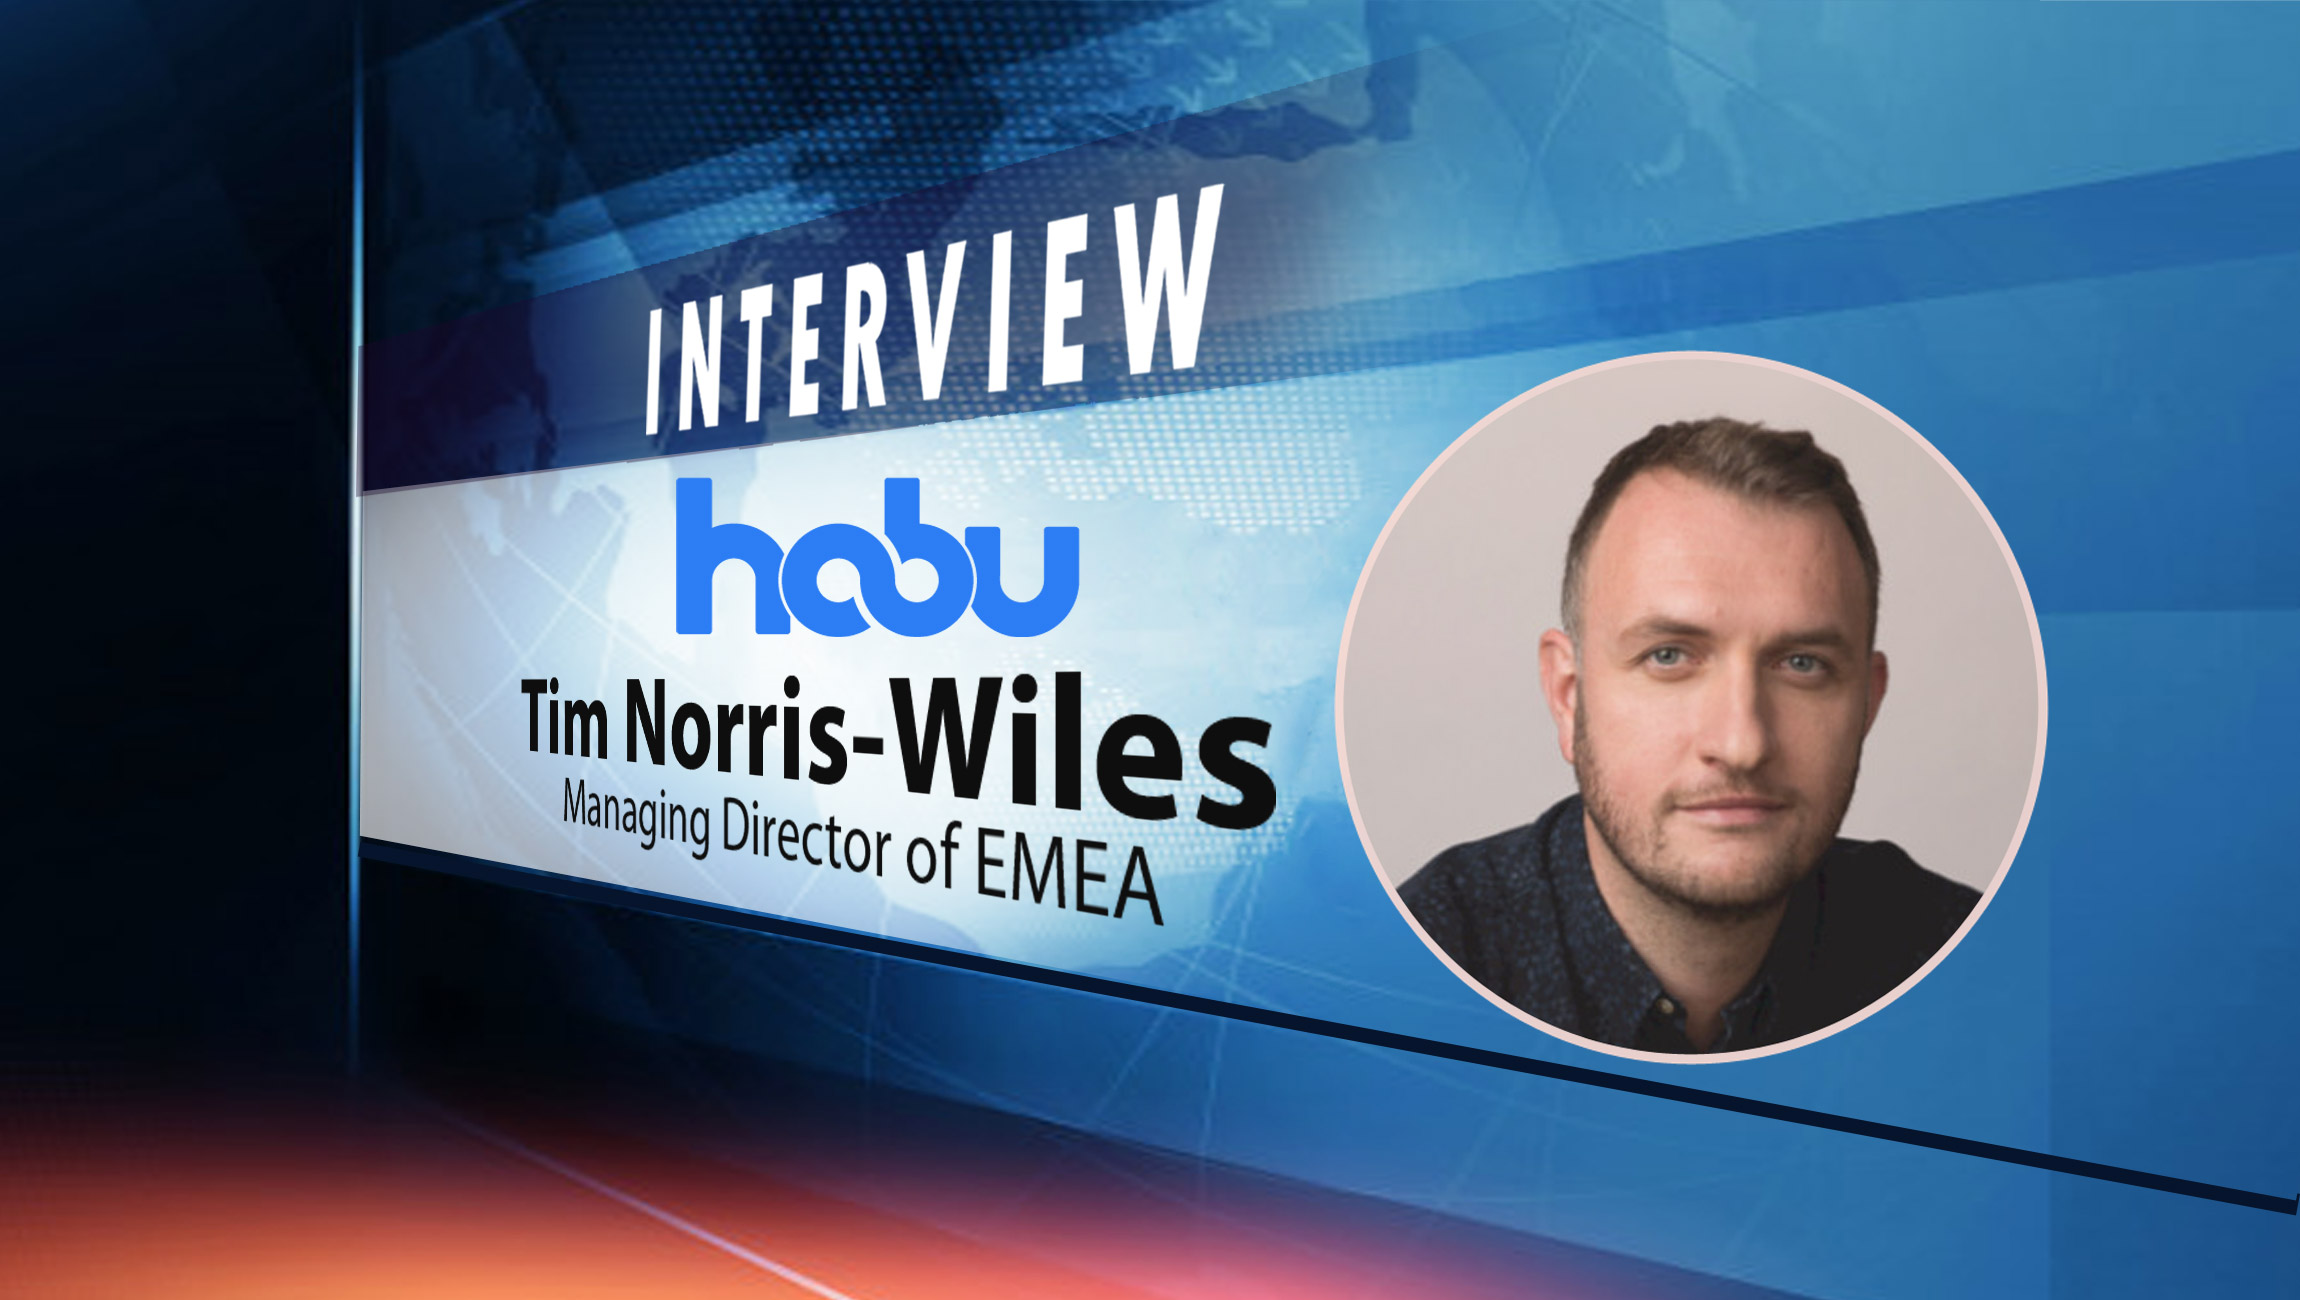 SalesTechStar Interview with Tim Norris-Wiles, Managing Director of EMEA at Habu